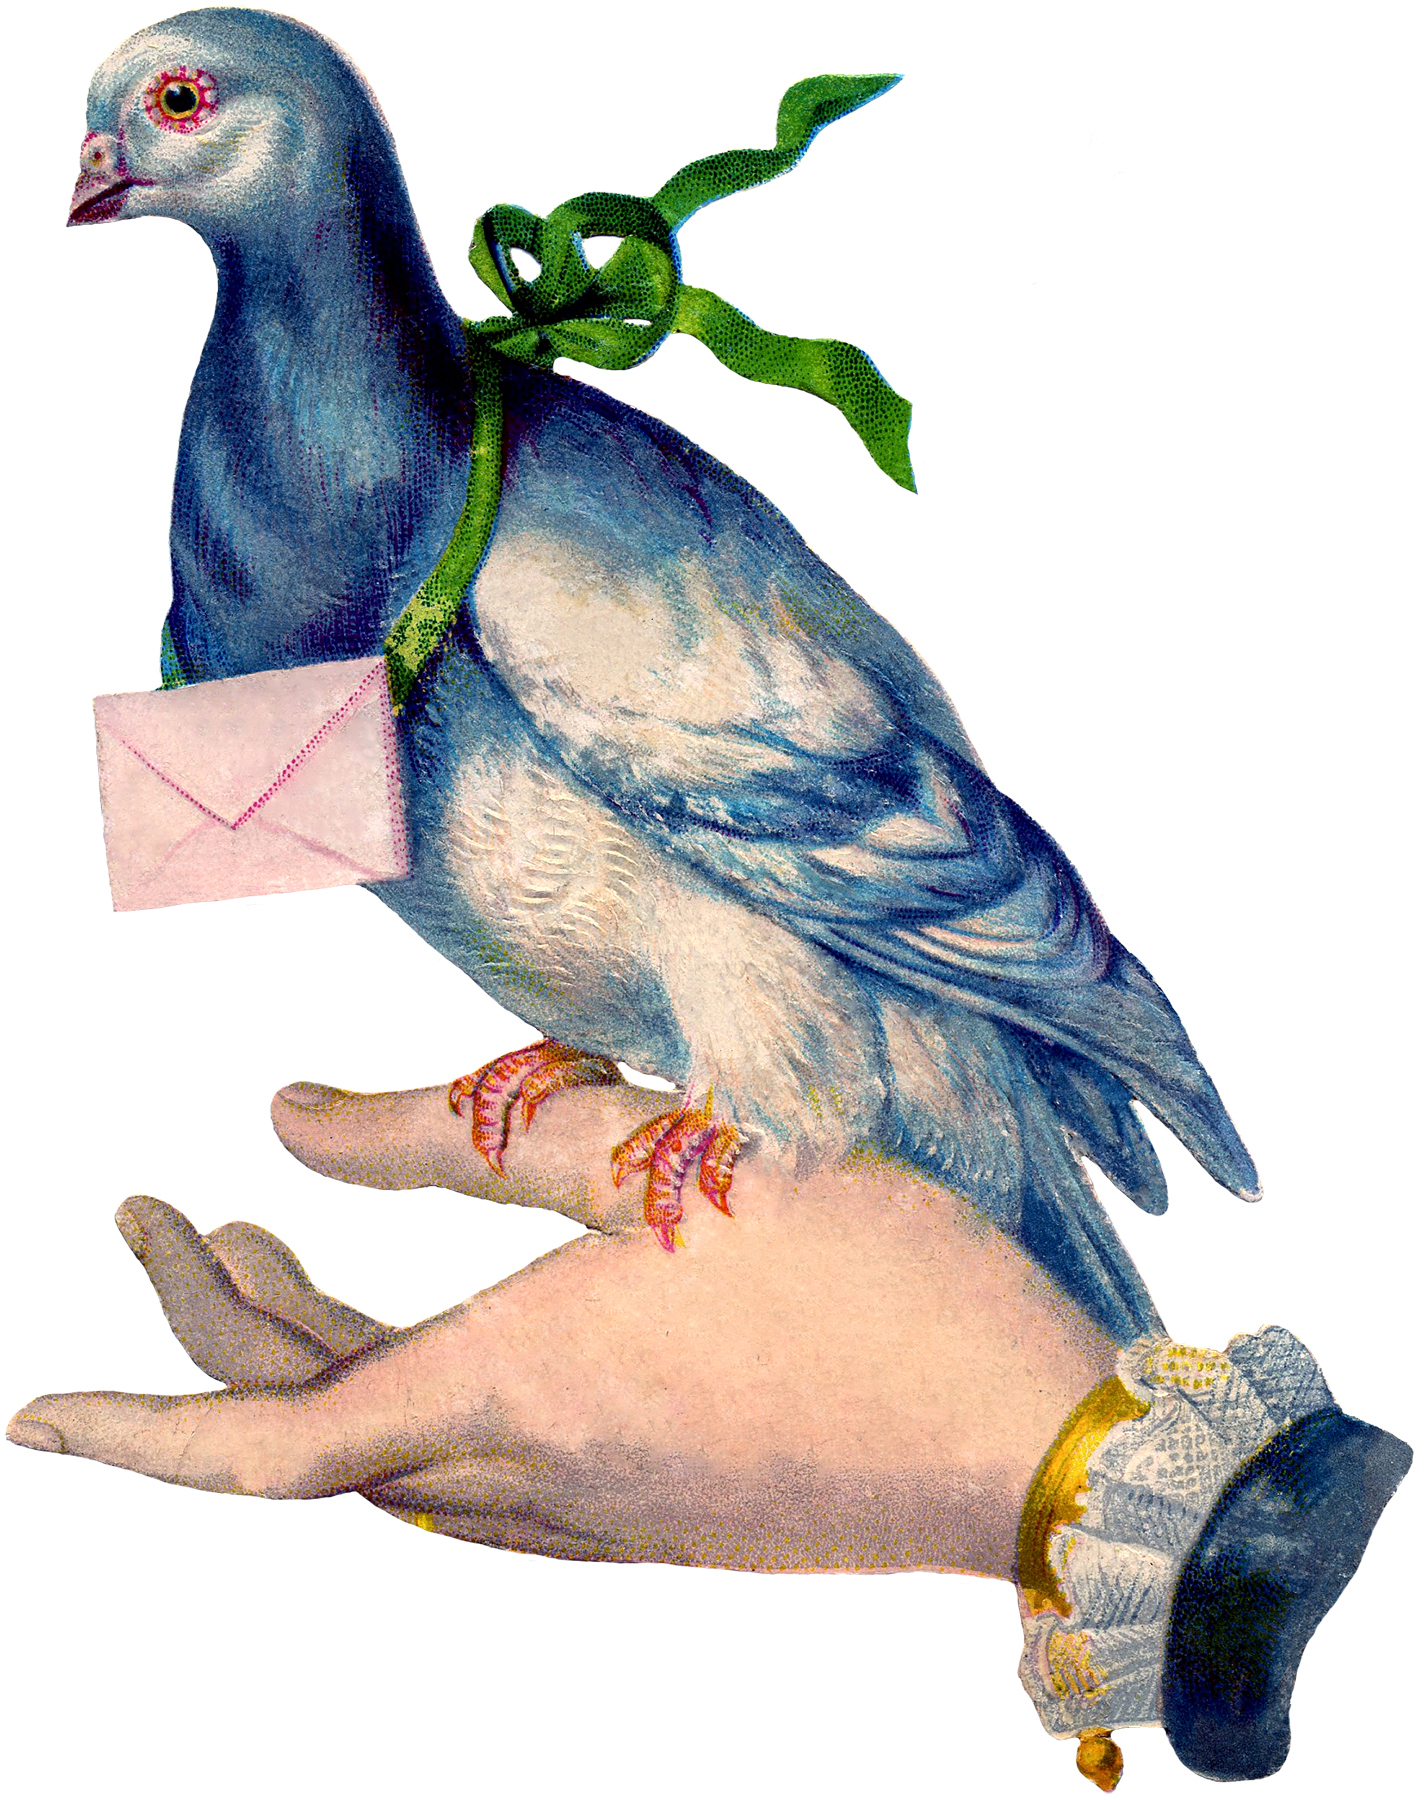 http://thegraphicsfairy.com/wp-content/uploads/2014/03/Carrier-Pigeon-GraphicsFairy.jpg